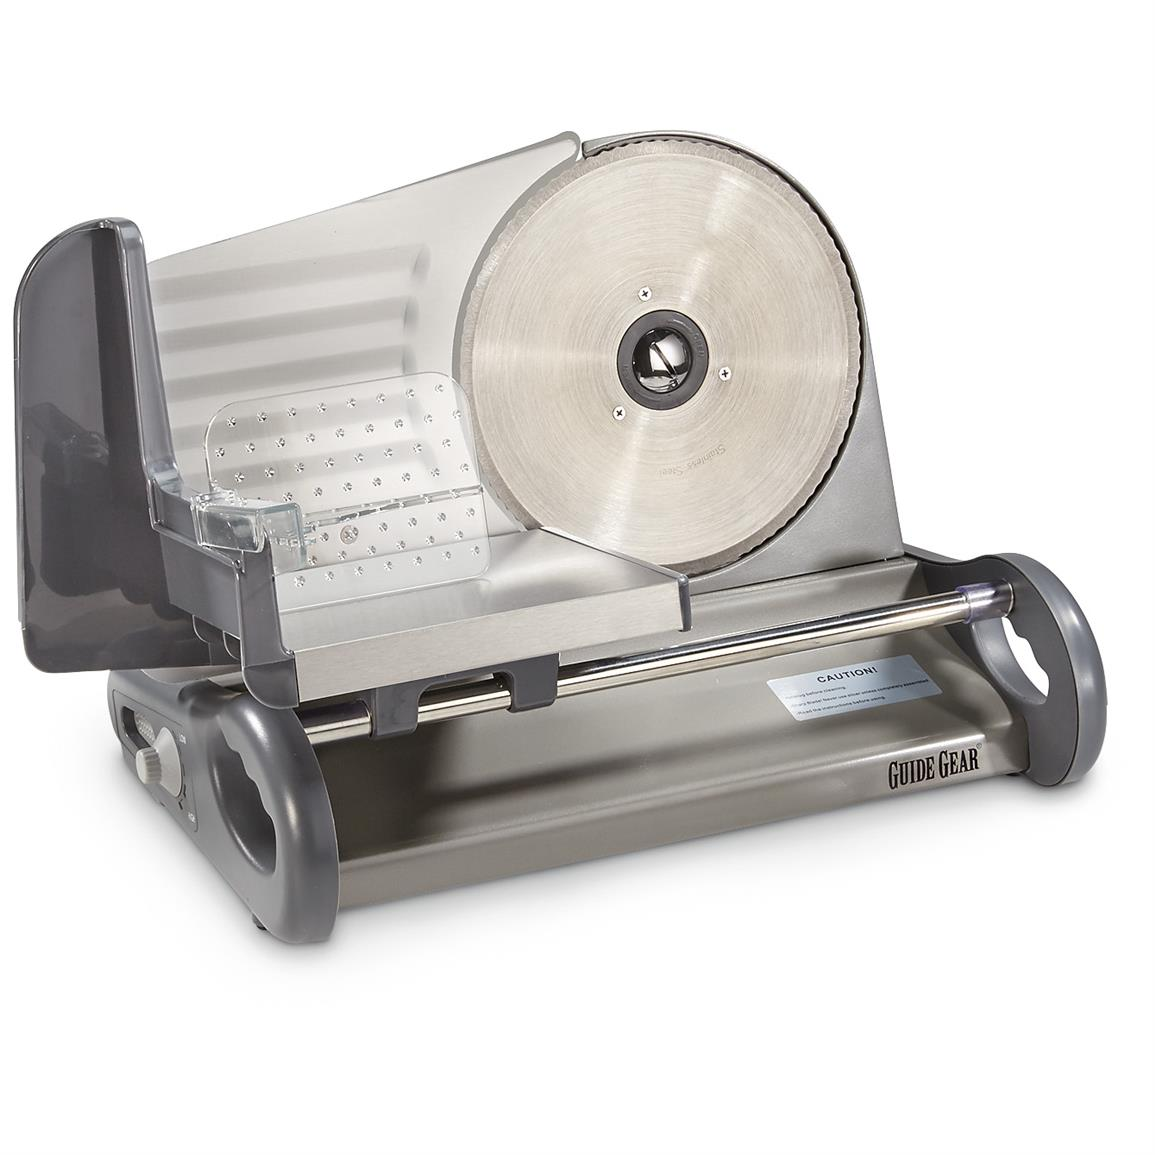 "Guide Gear Electric Stainless Steel Food Slicer, 8.5"" Blade"